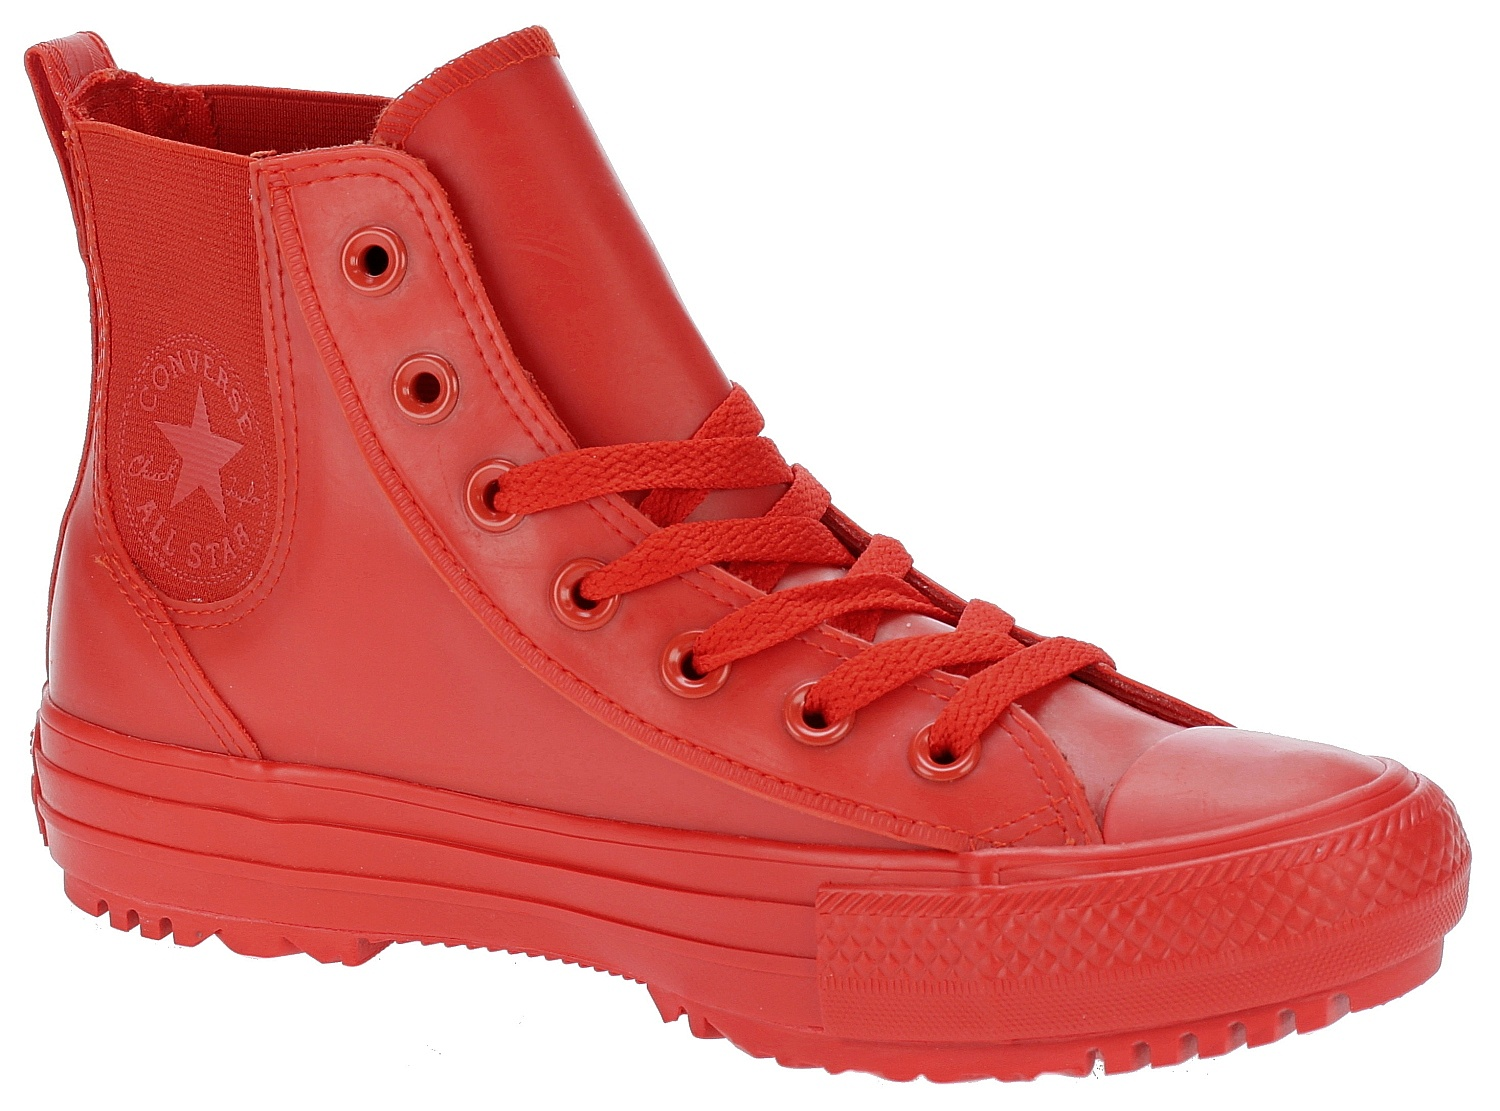 7d9886c92c0 boty Converse Chuck Taylor All Star Chelsea Rubber Boot Hi - 553265 Signal  Red Signal Red - Snowboard shop